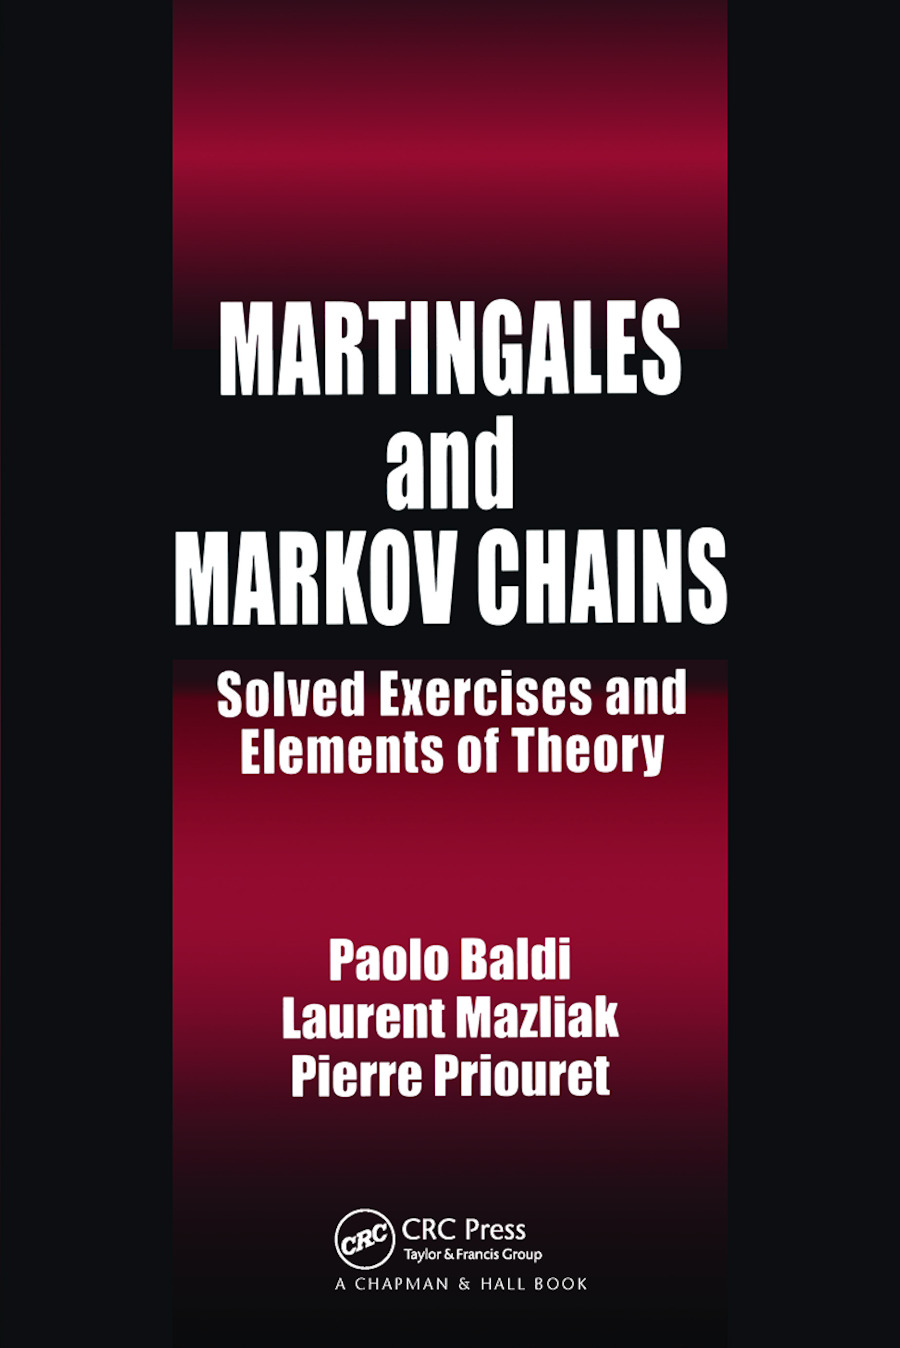 Martingales and Markov Chains: Solved Exercises and Elements of